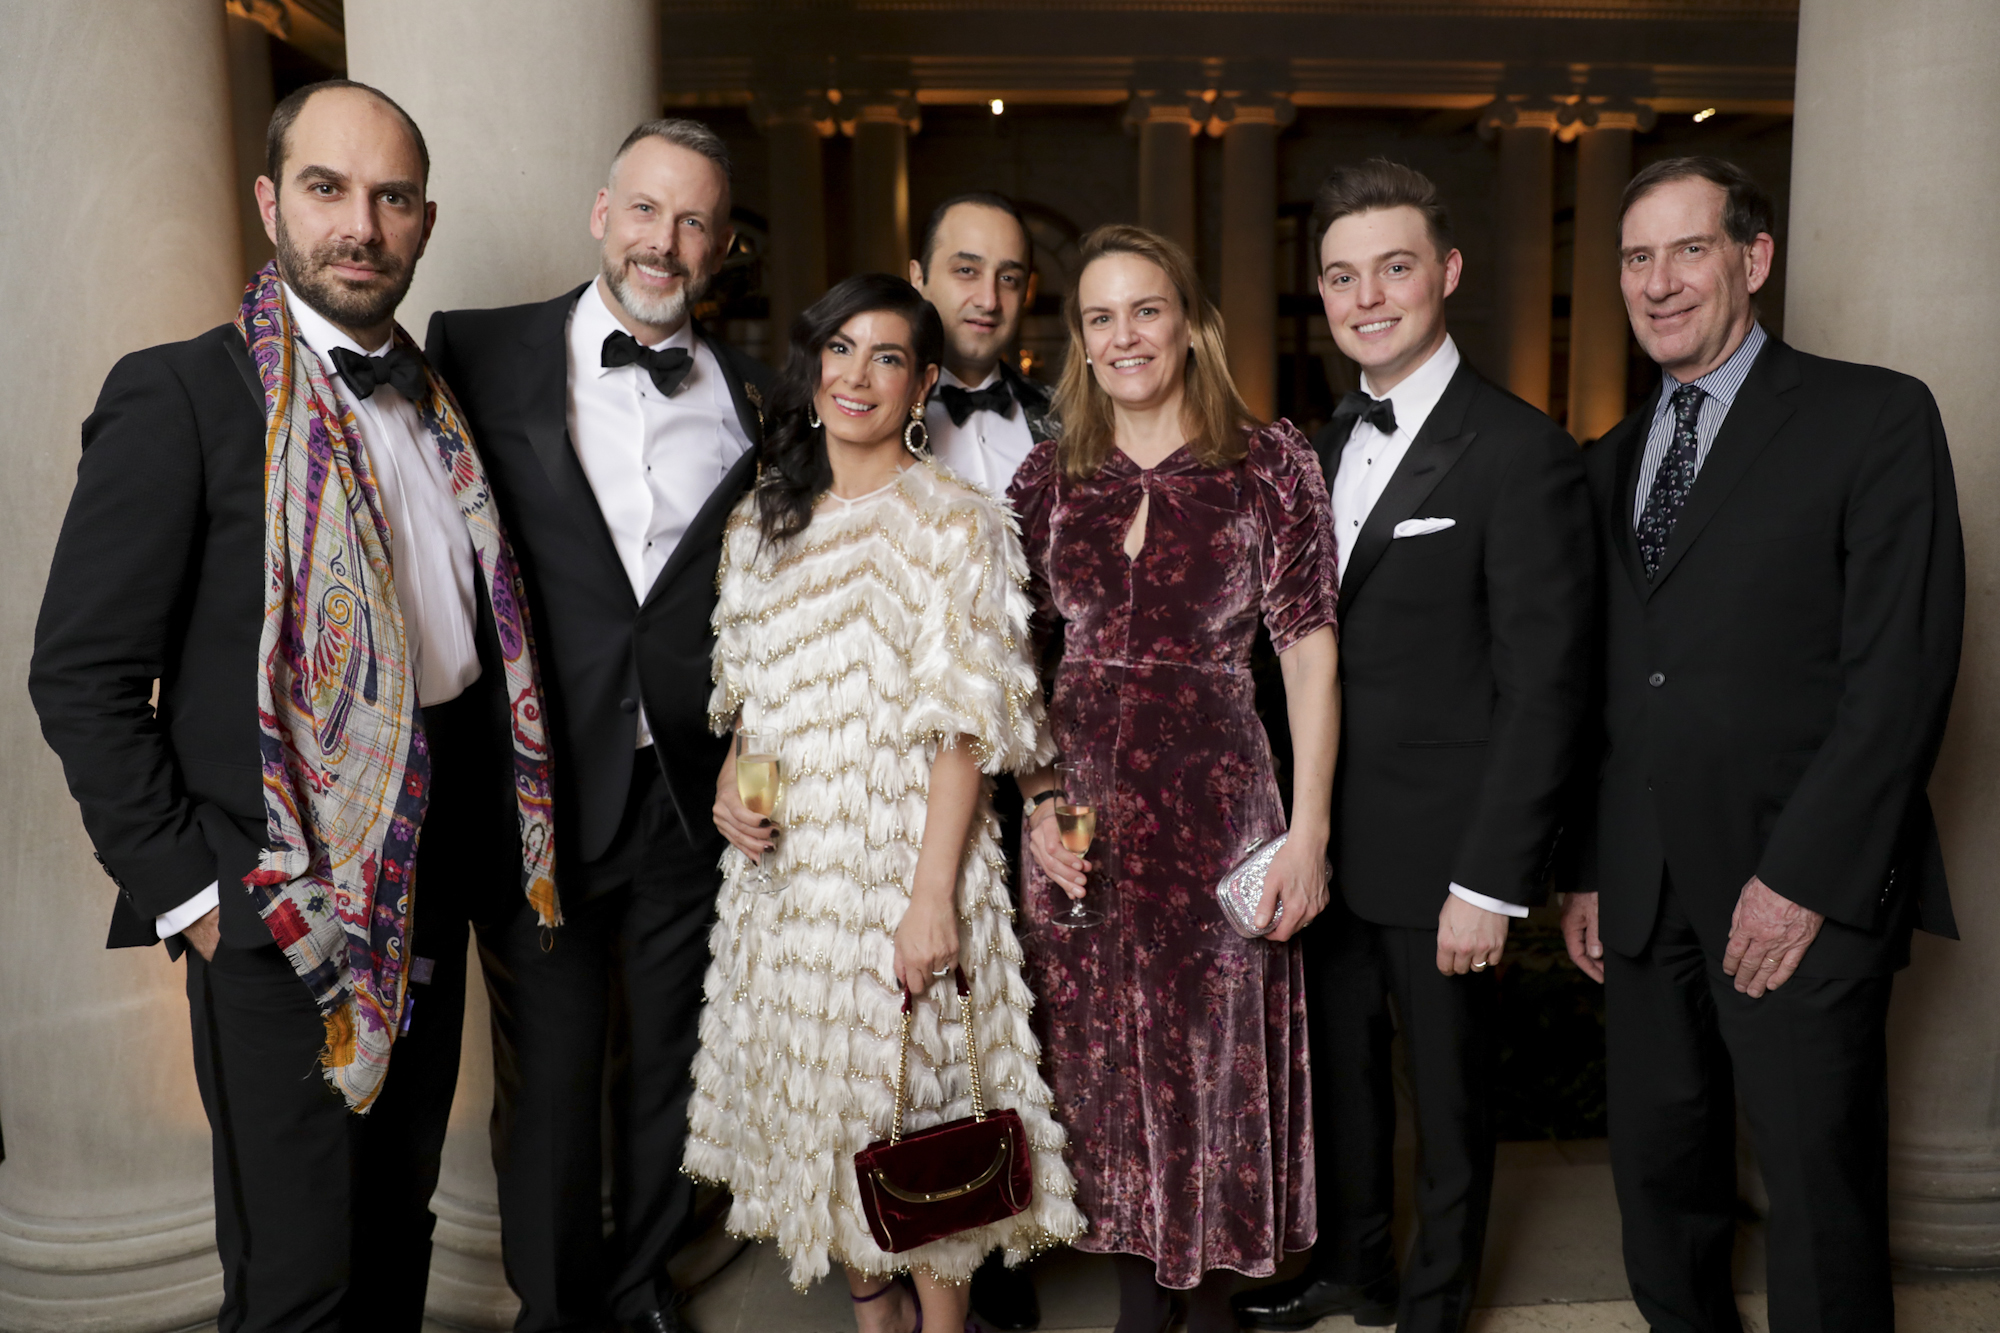 Xavier F. Salomon, Dan Rothmann, Lizzie Asher, Daniel Ezra, Tia Chapman, Cole Harrell, and Ian Wardropper attend The Frick Collection's 20th Annual Young Fellows Ball at 1 East 70th Street on Thursday, March 21st, 2019. Photography, Courtesy of The Frick Collection.